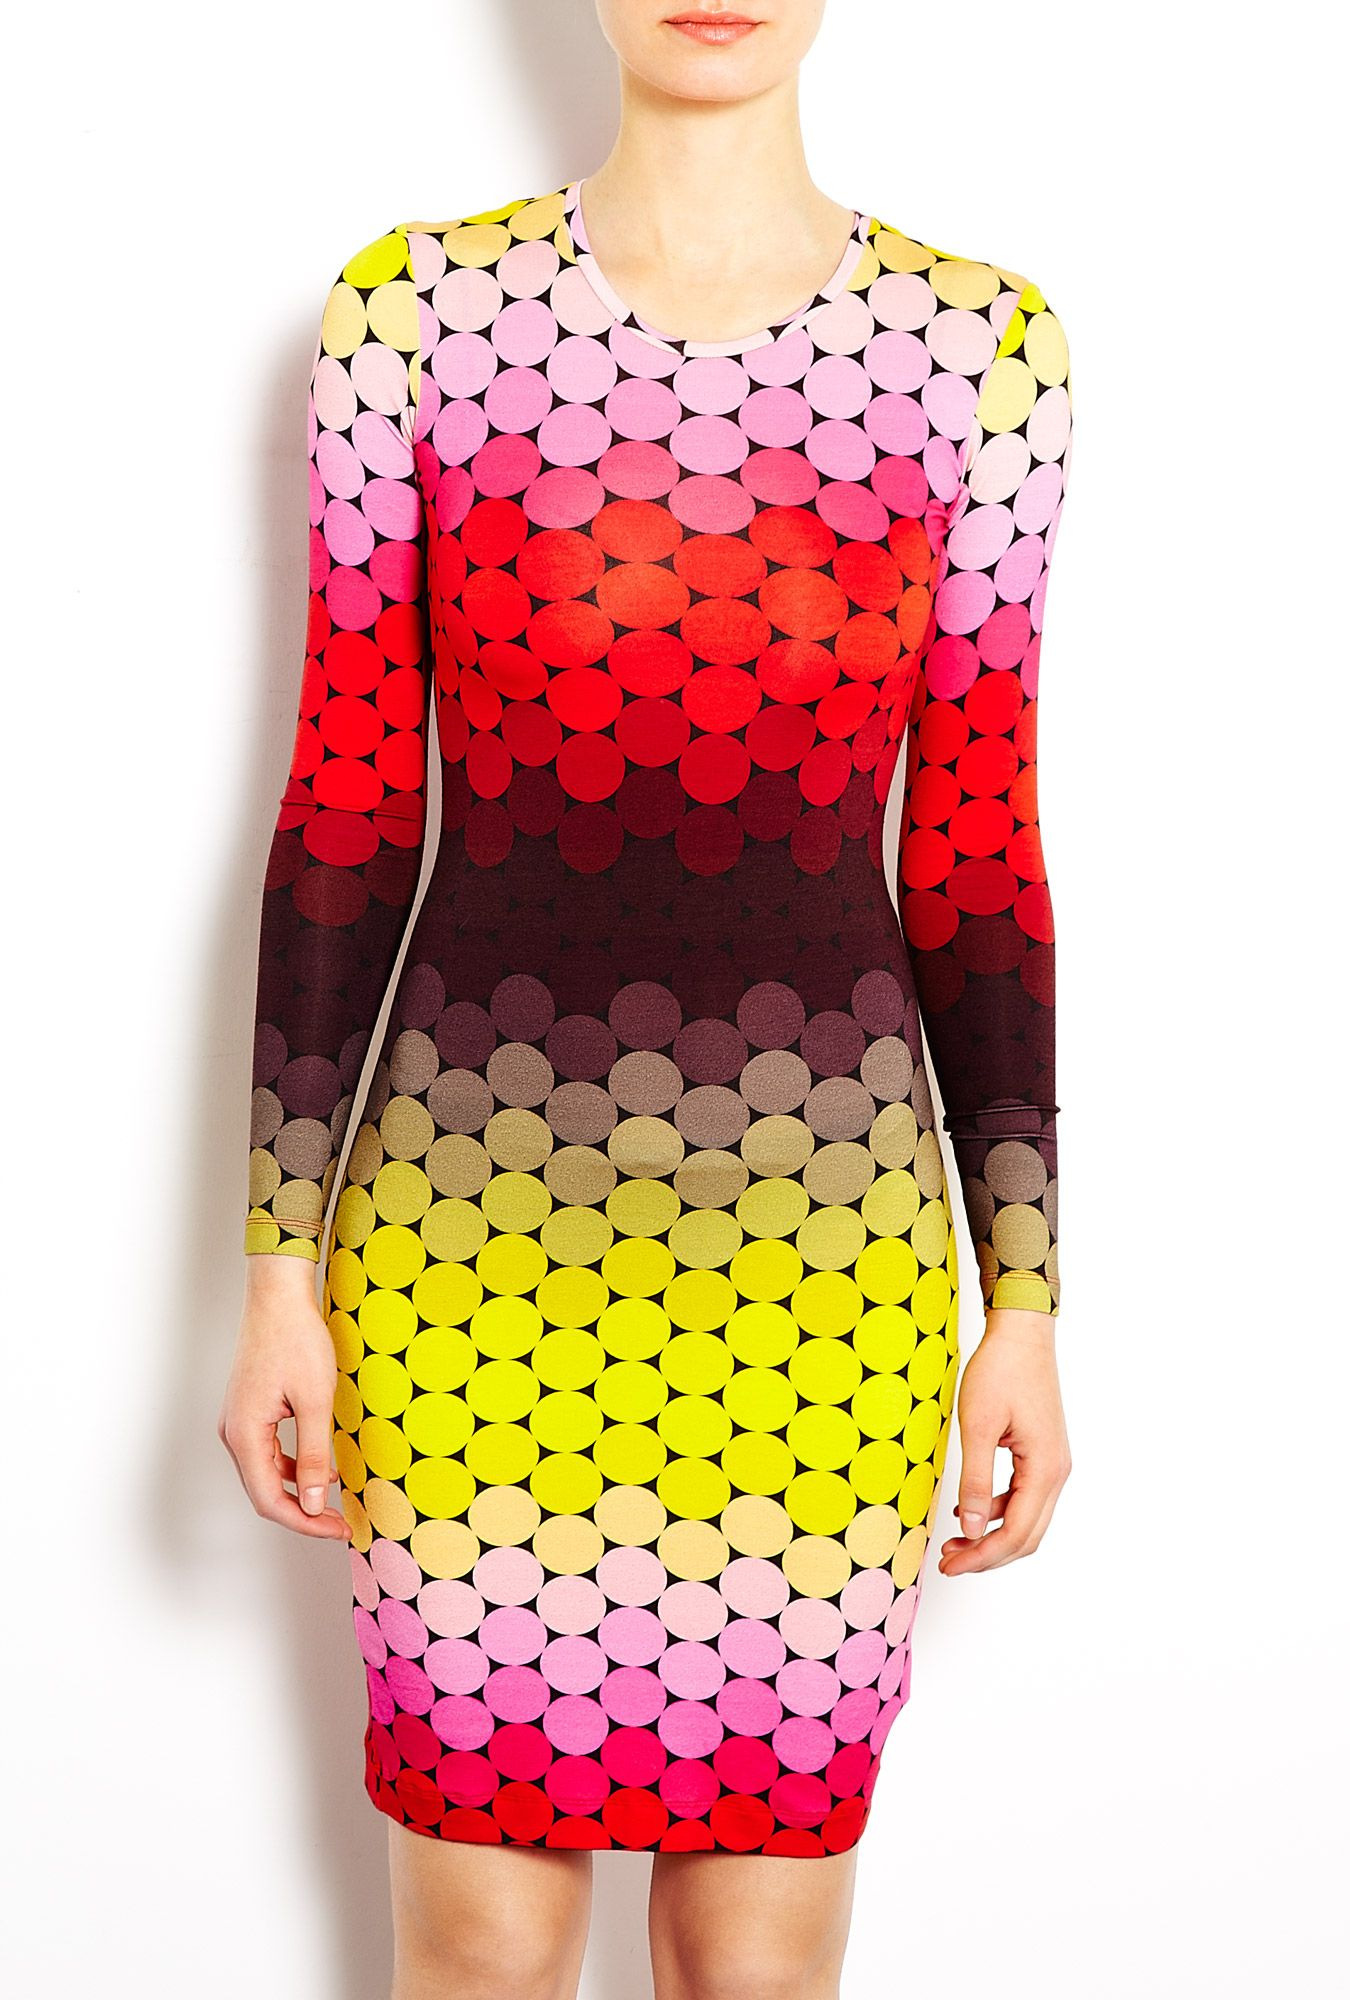 Jonathan saunders jersey long sleeve ombre printed dress fashion